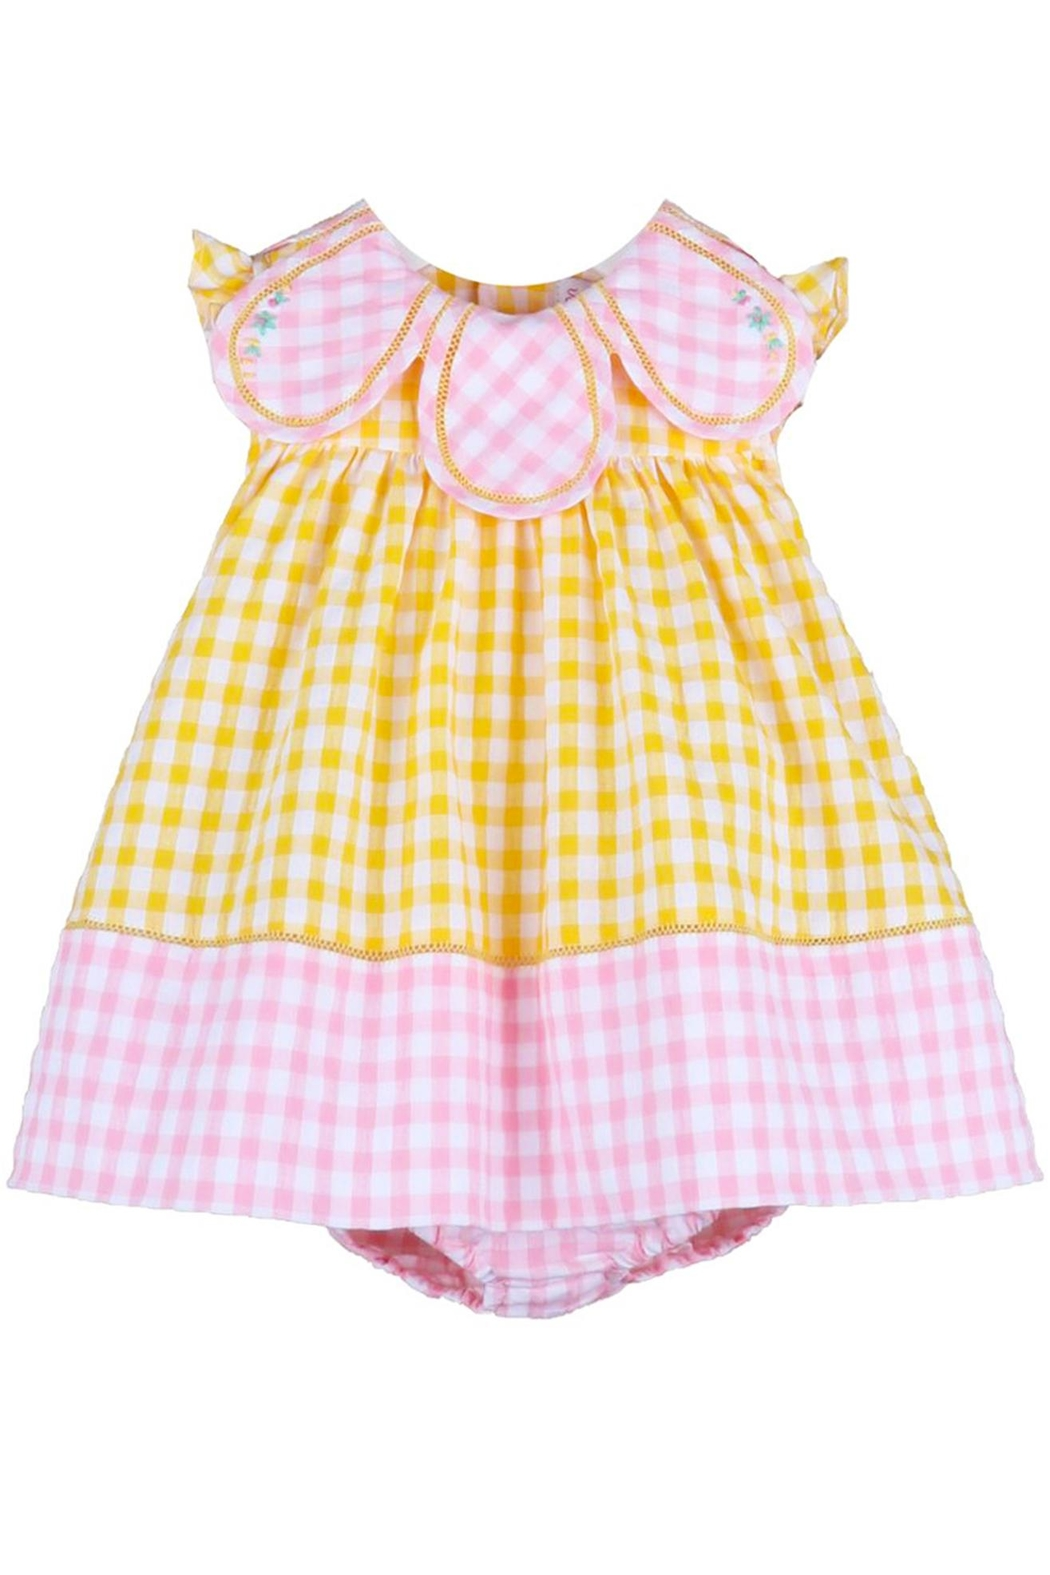 Sophie & Lucas Sunny-Chicks Pink-Yellow-Gingham Petal-Dress - Front Full Image